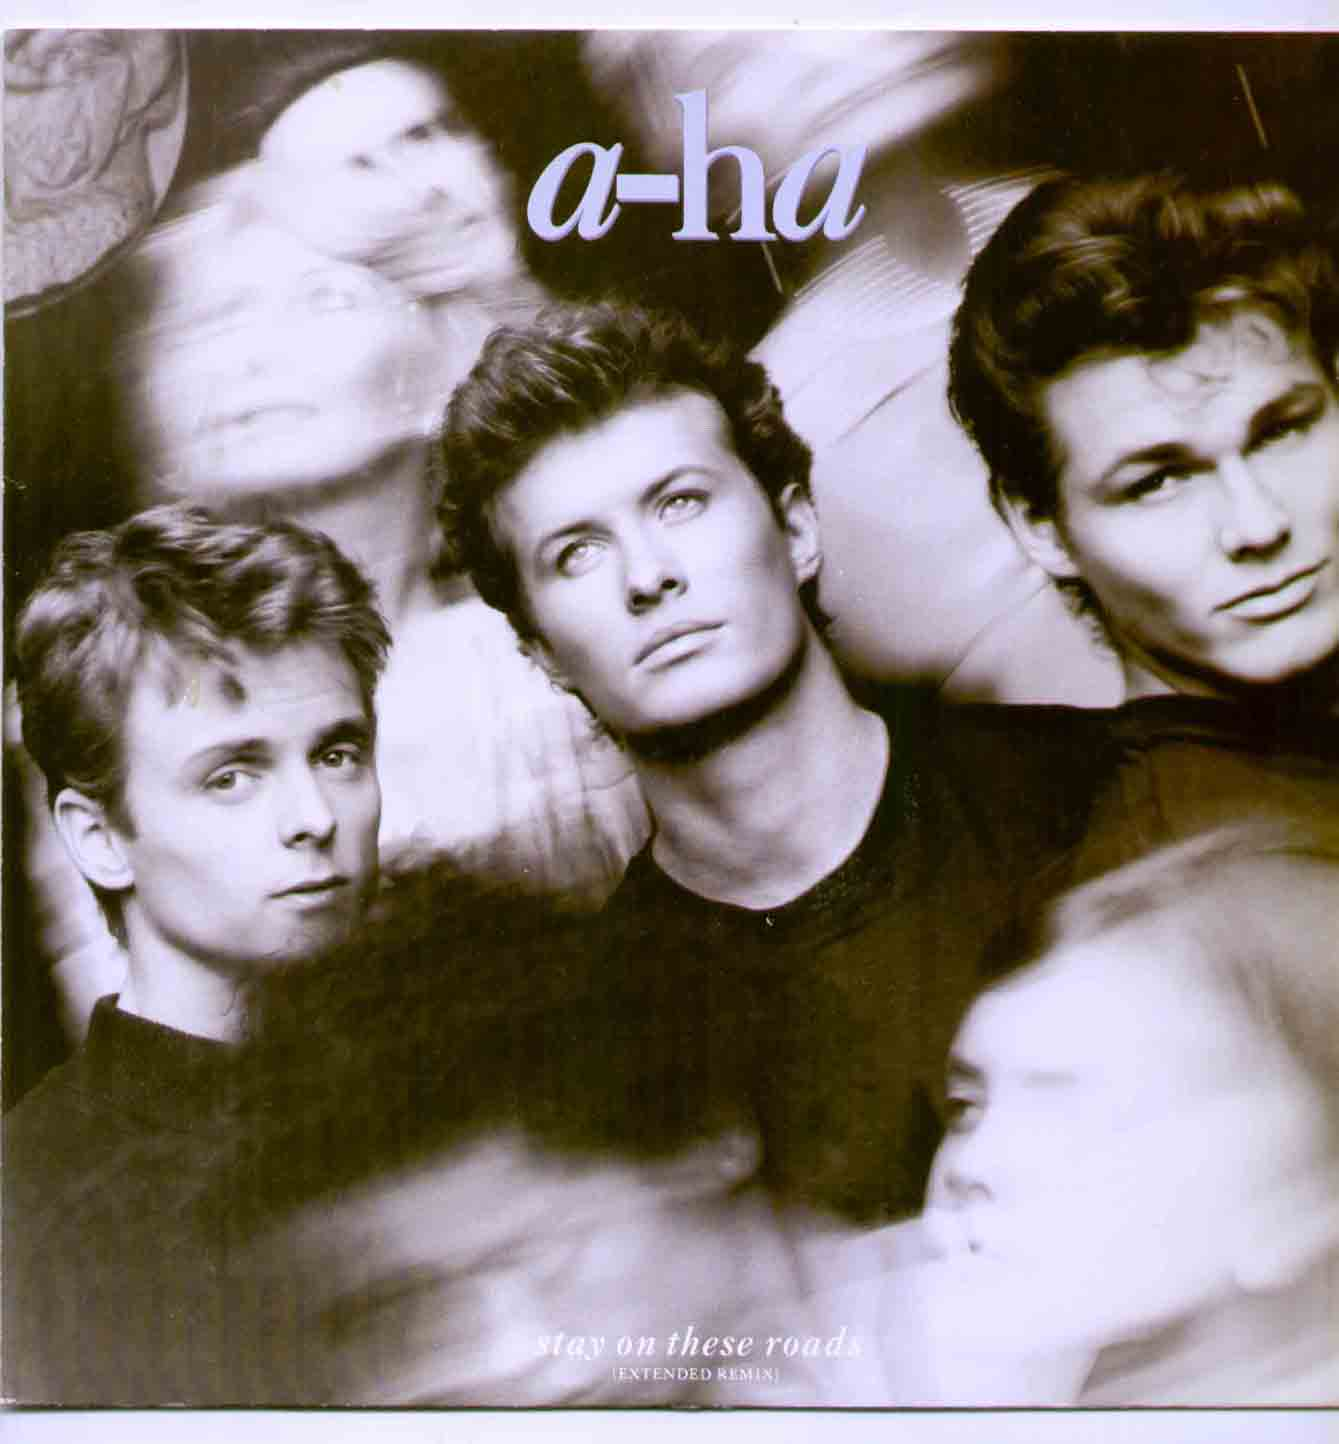 A-Ha - Stay On These Roads Album